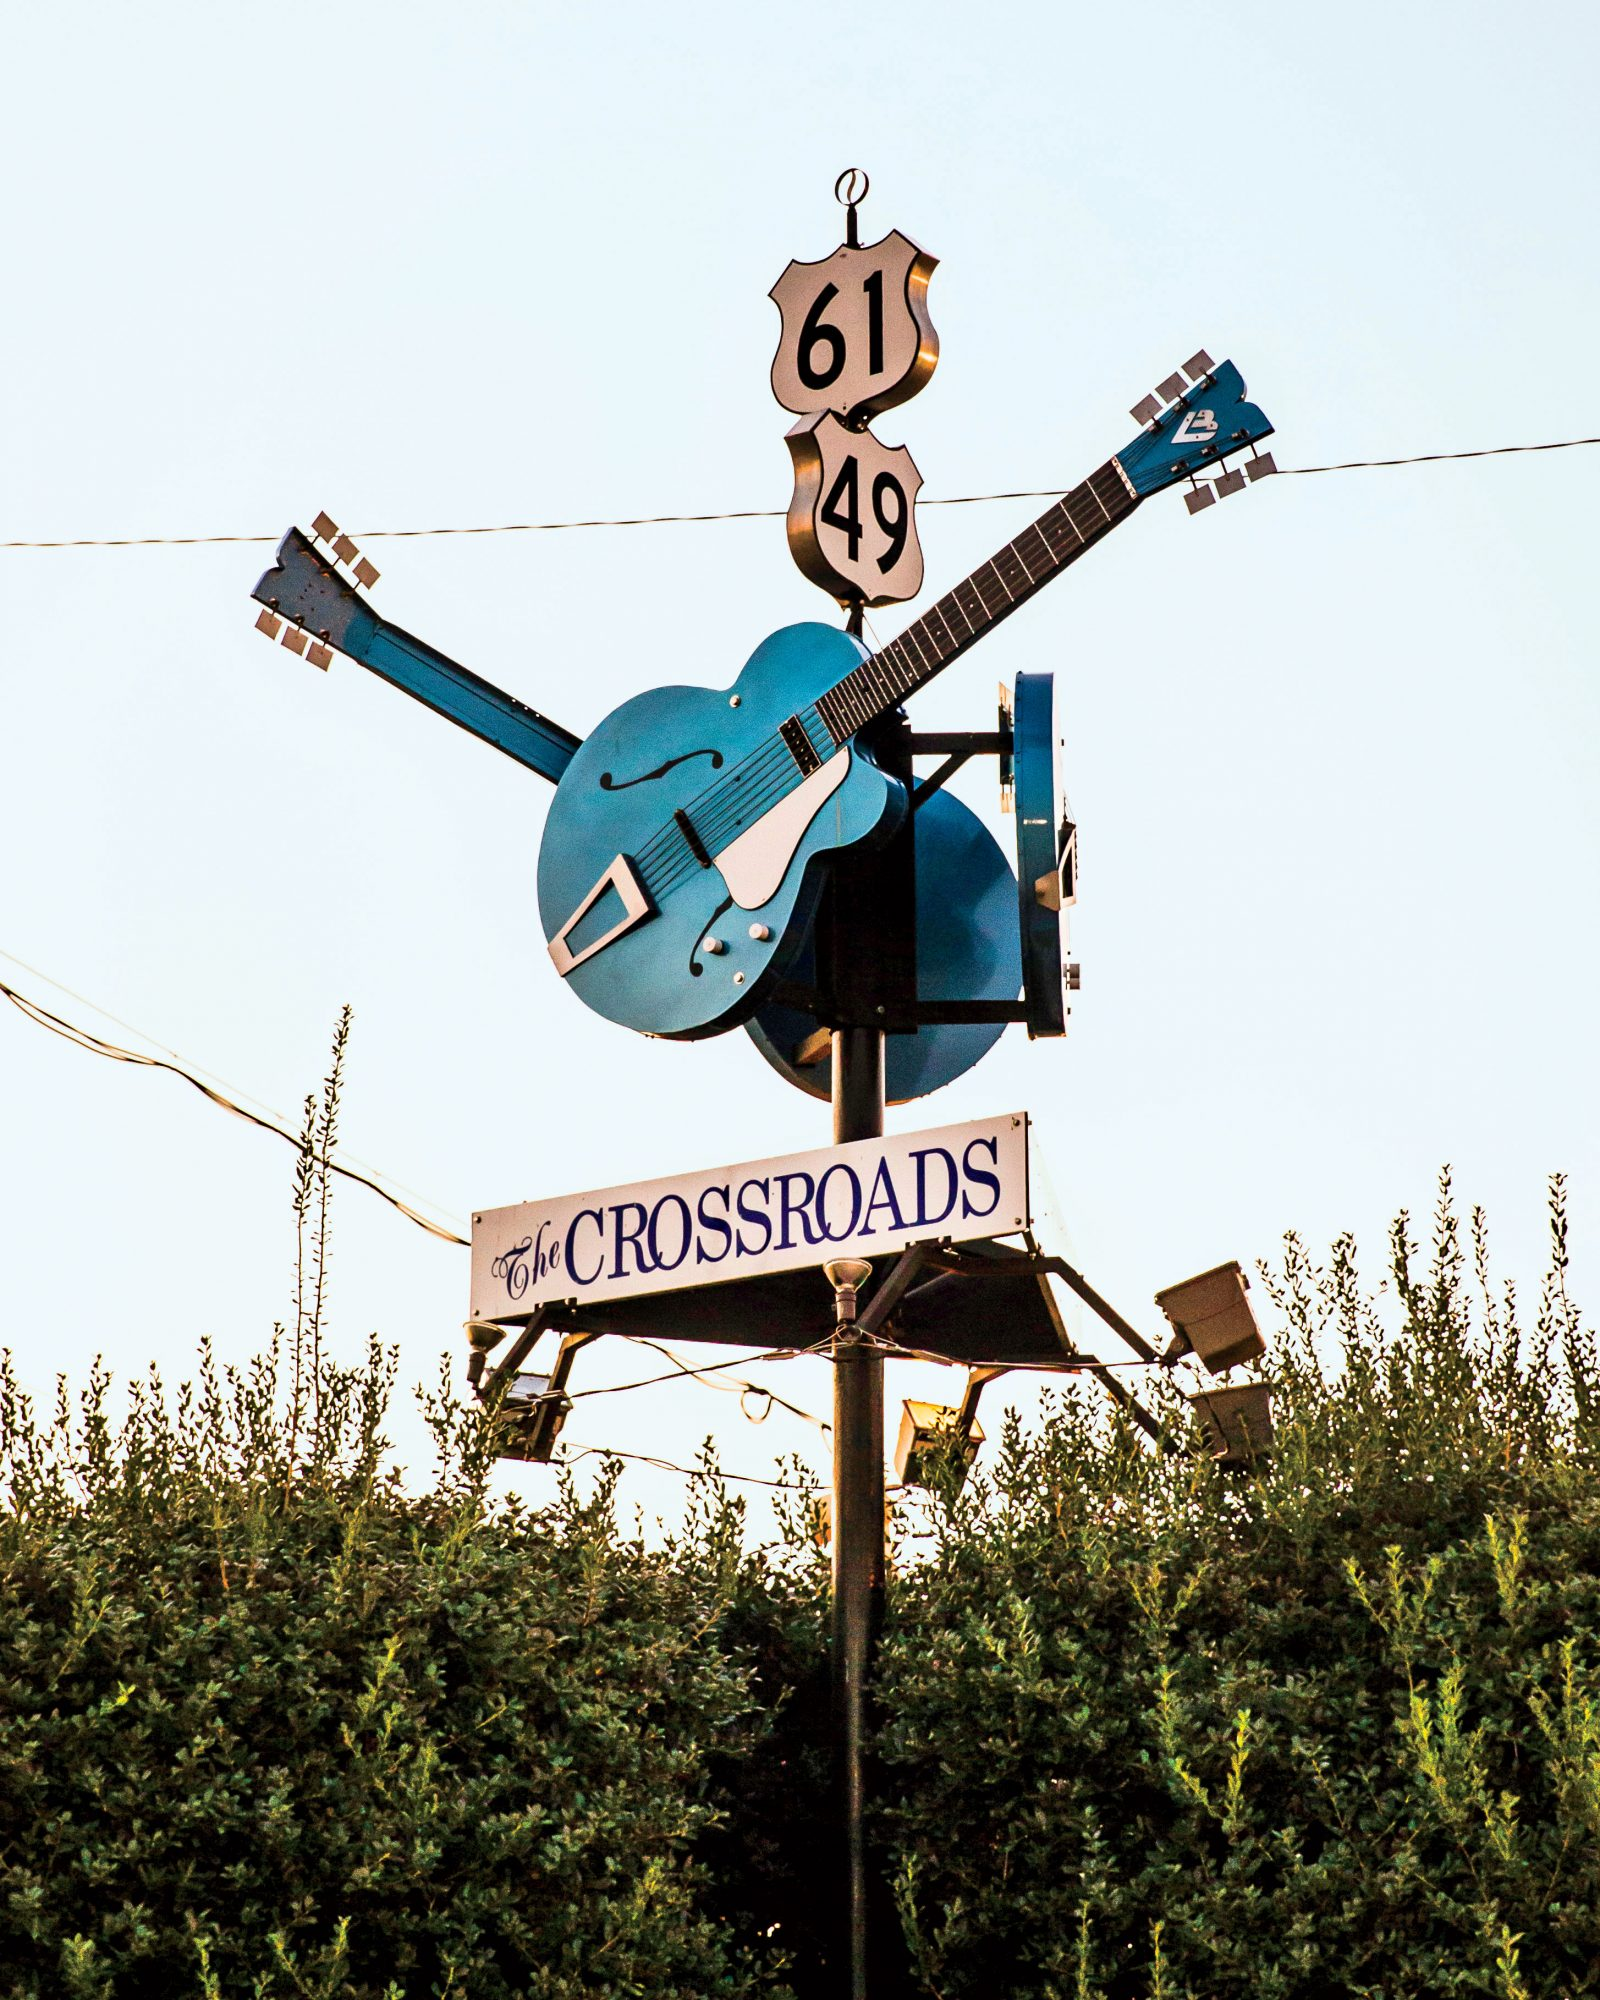 Robert Johnson's fabled Crossroads